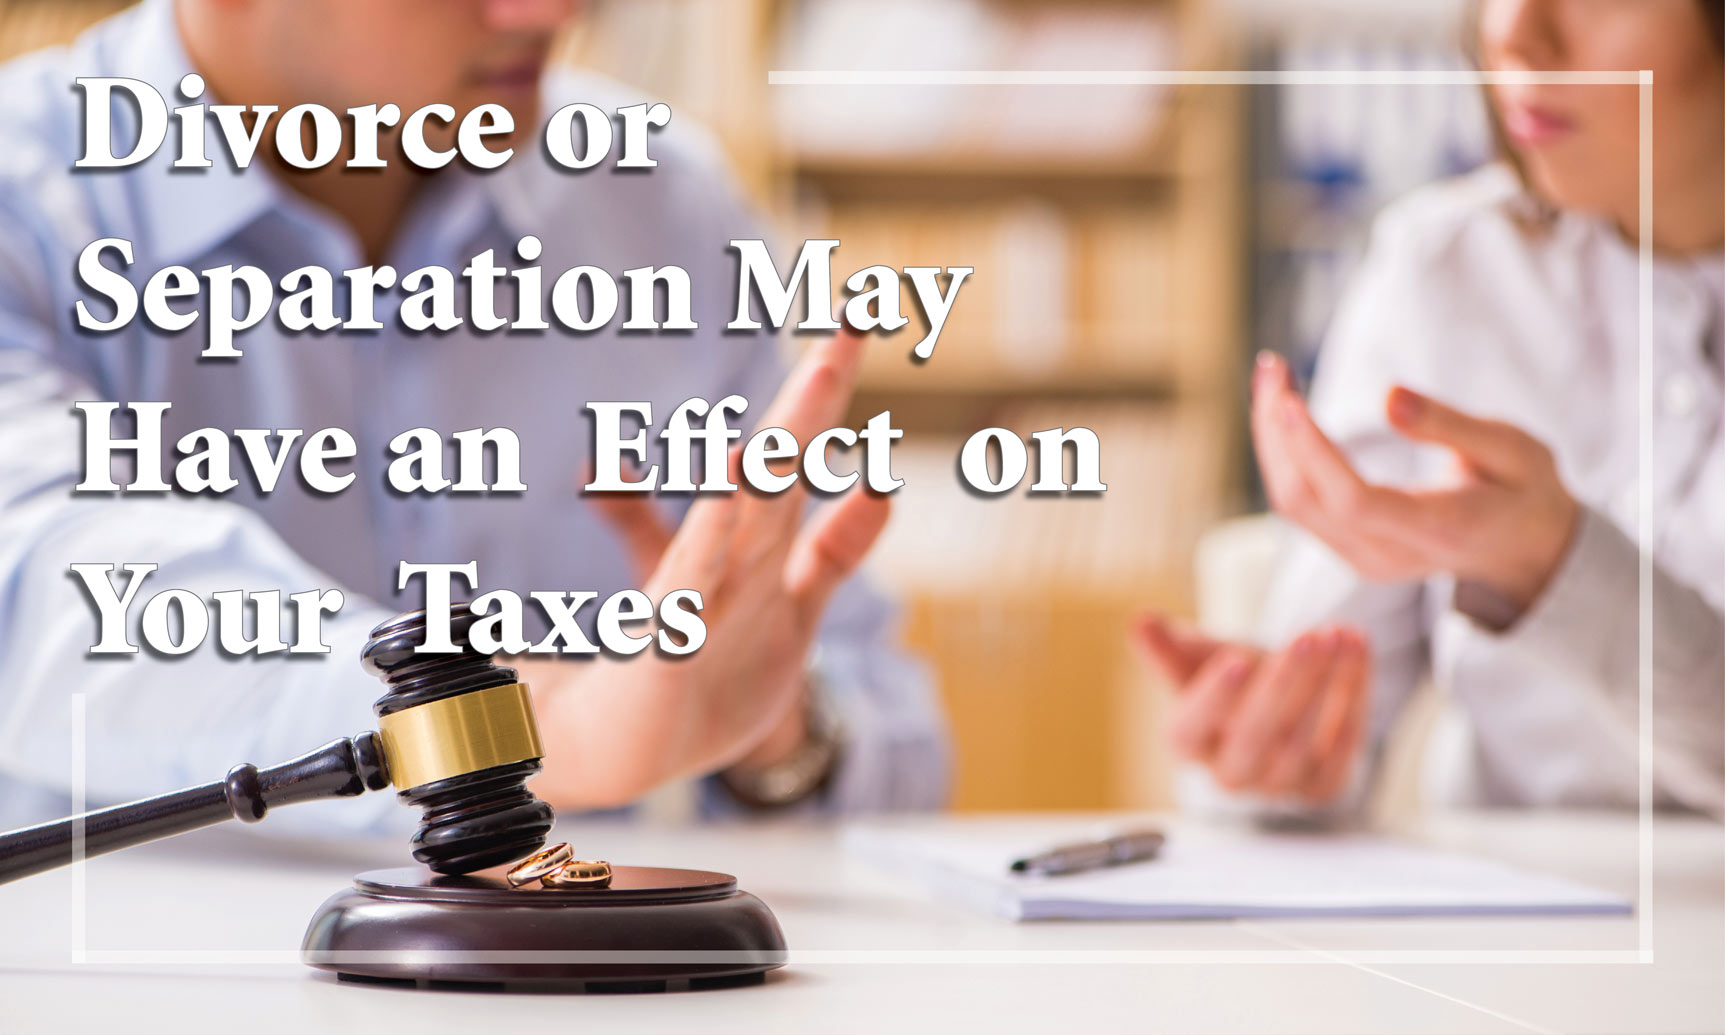 Divorce or Separation May Have an Effect on Your Taxes